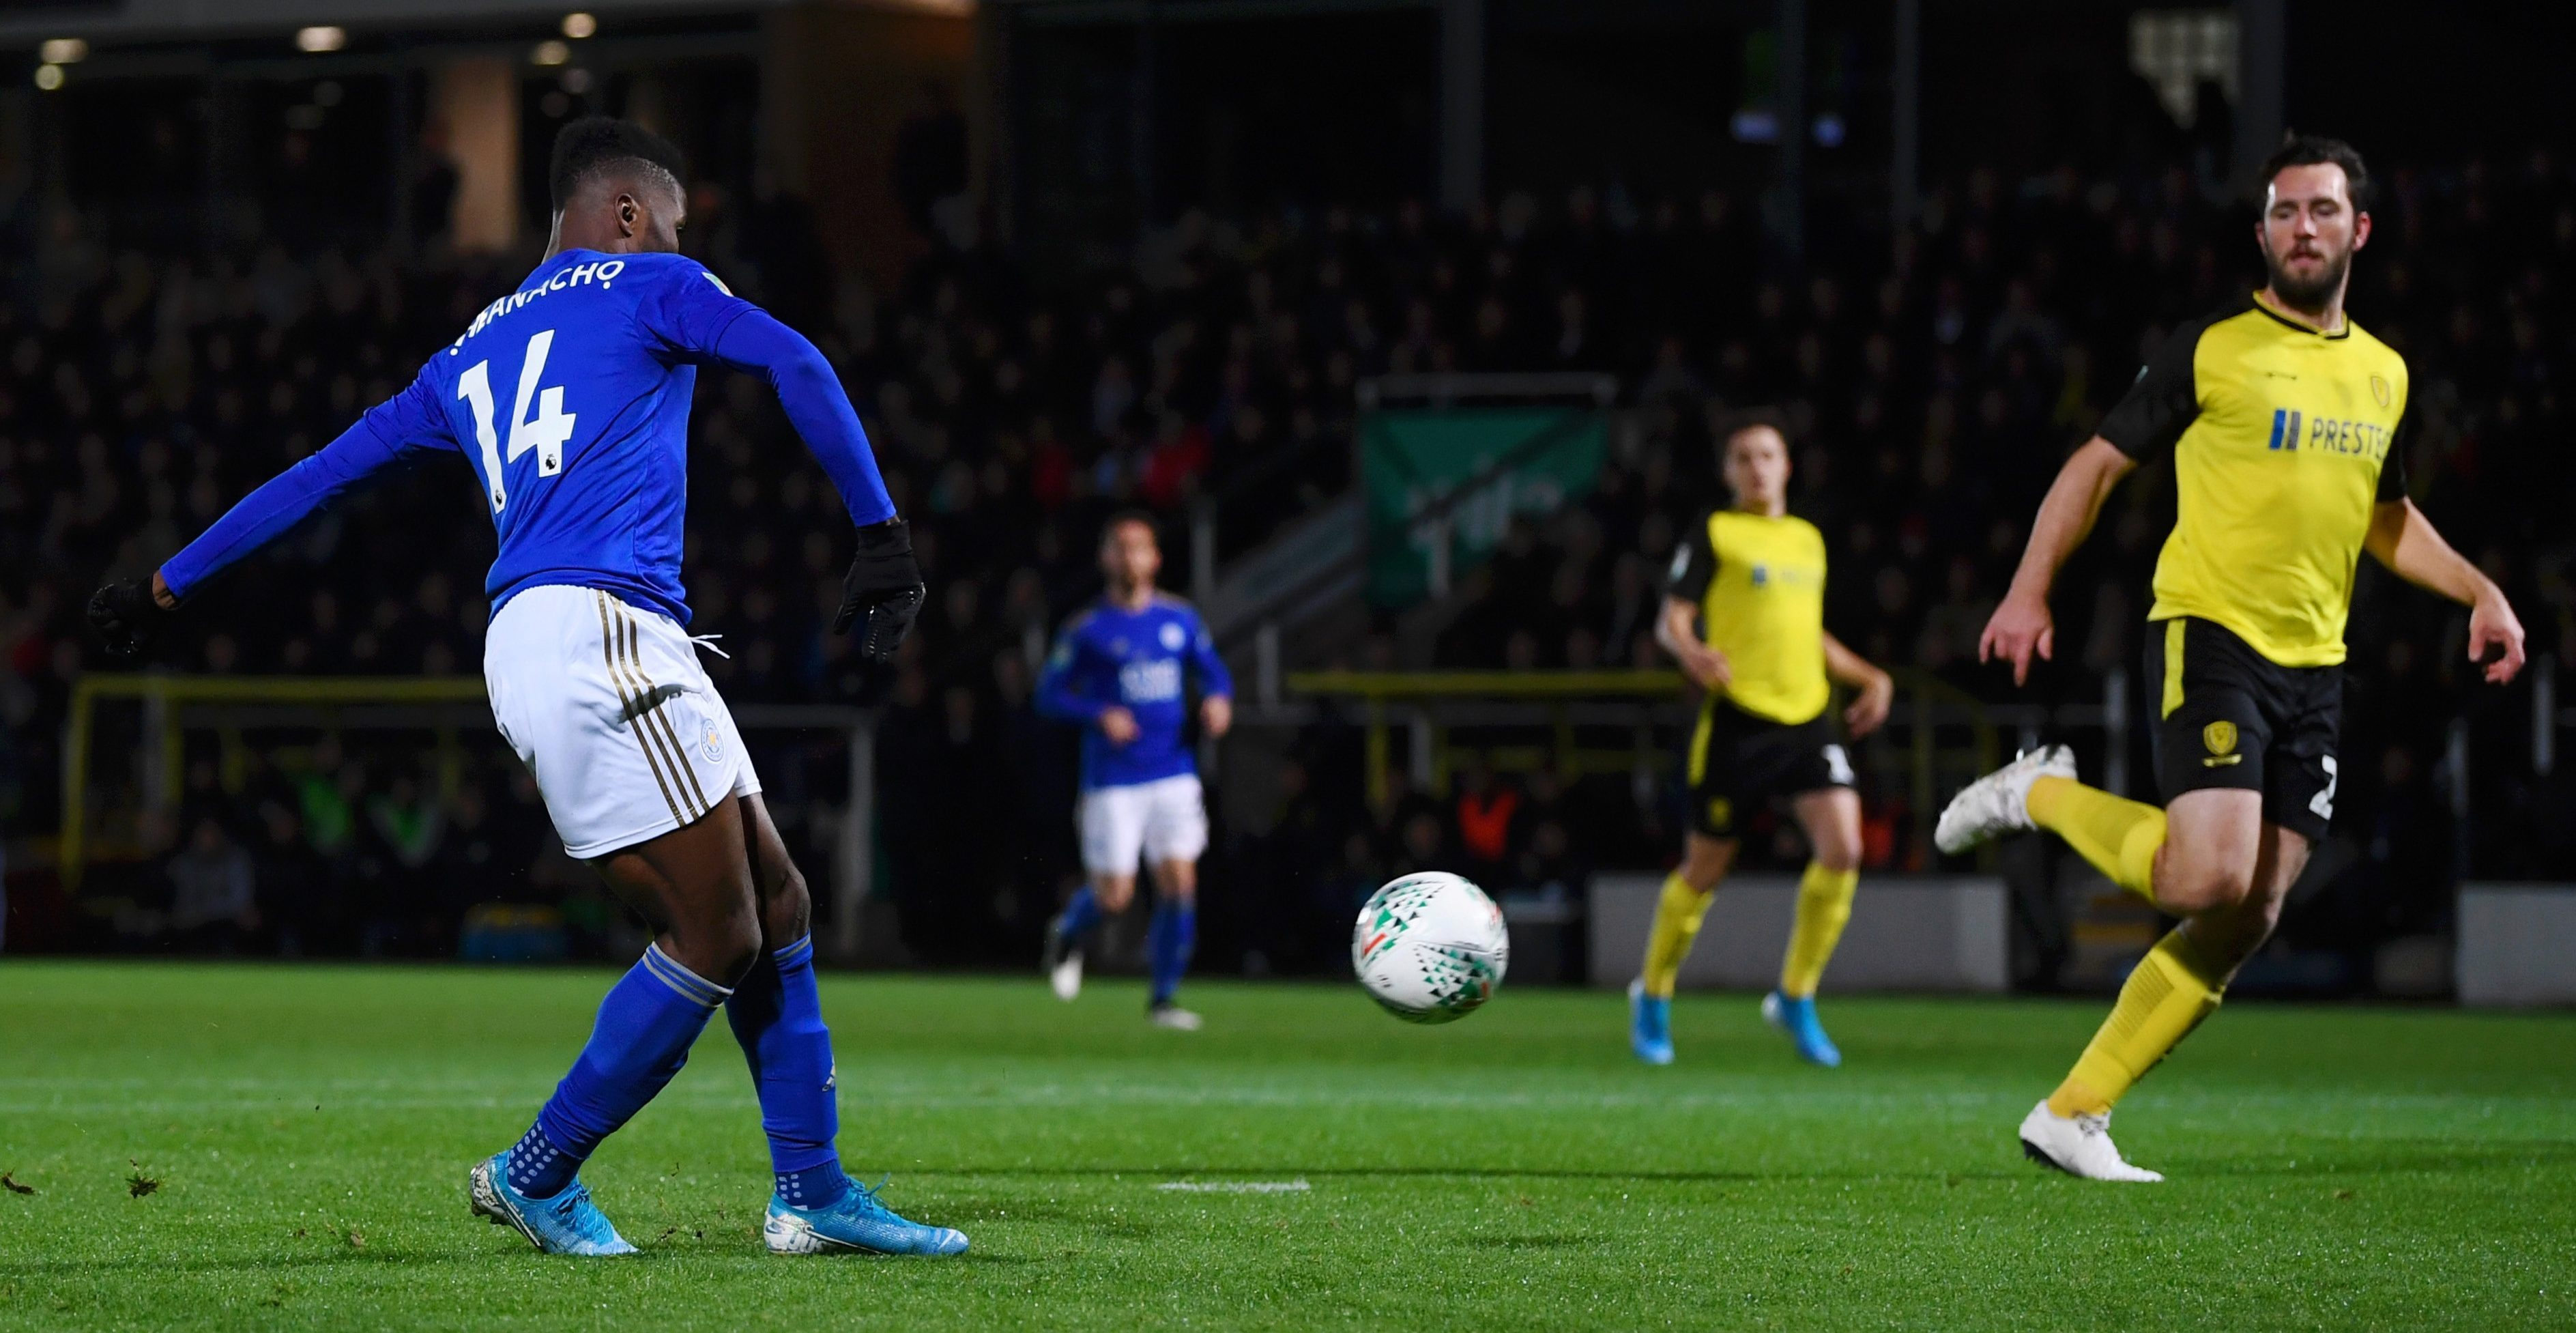 Burton 1-3 Leicester: Foxes through to Carabao Cup quarter-finals